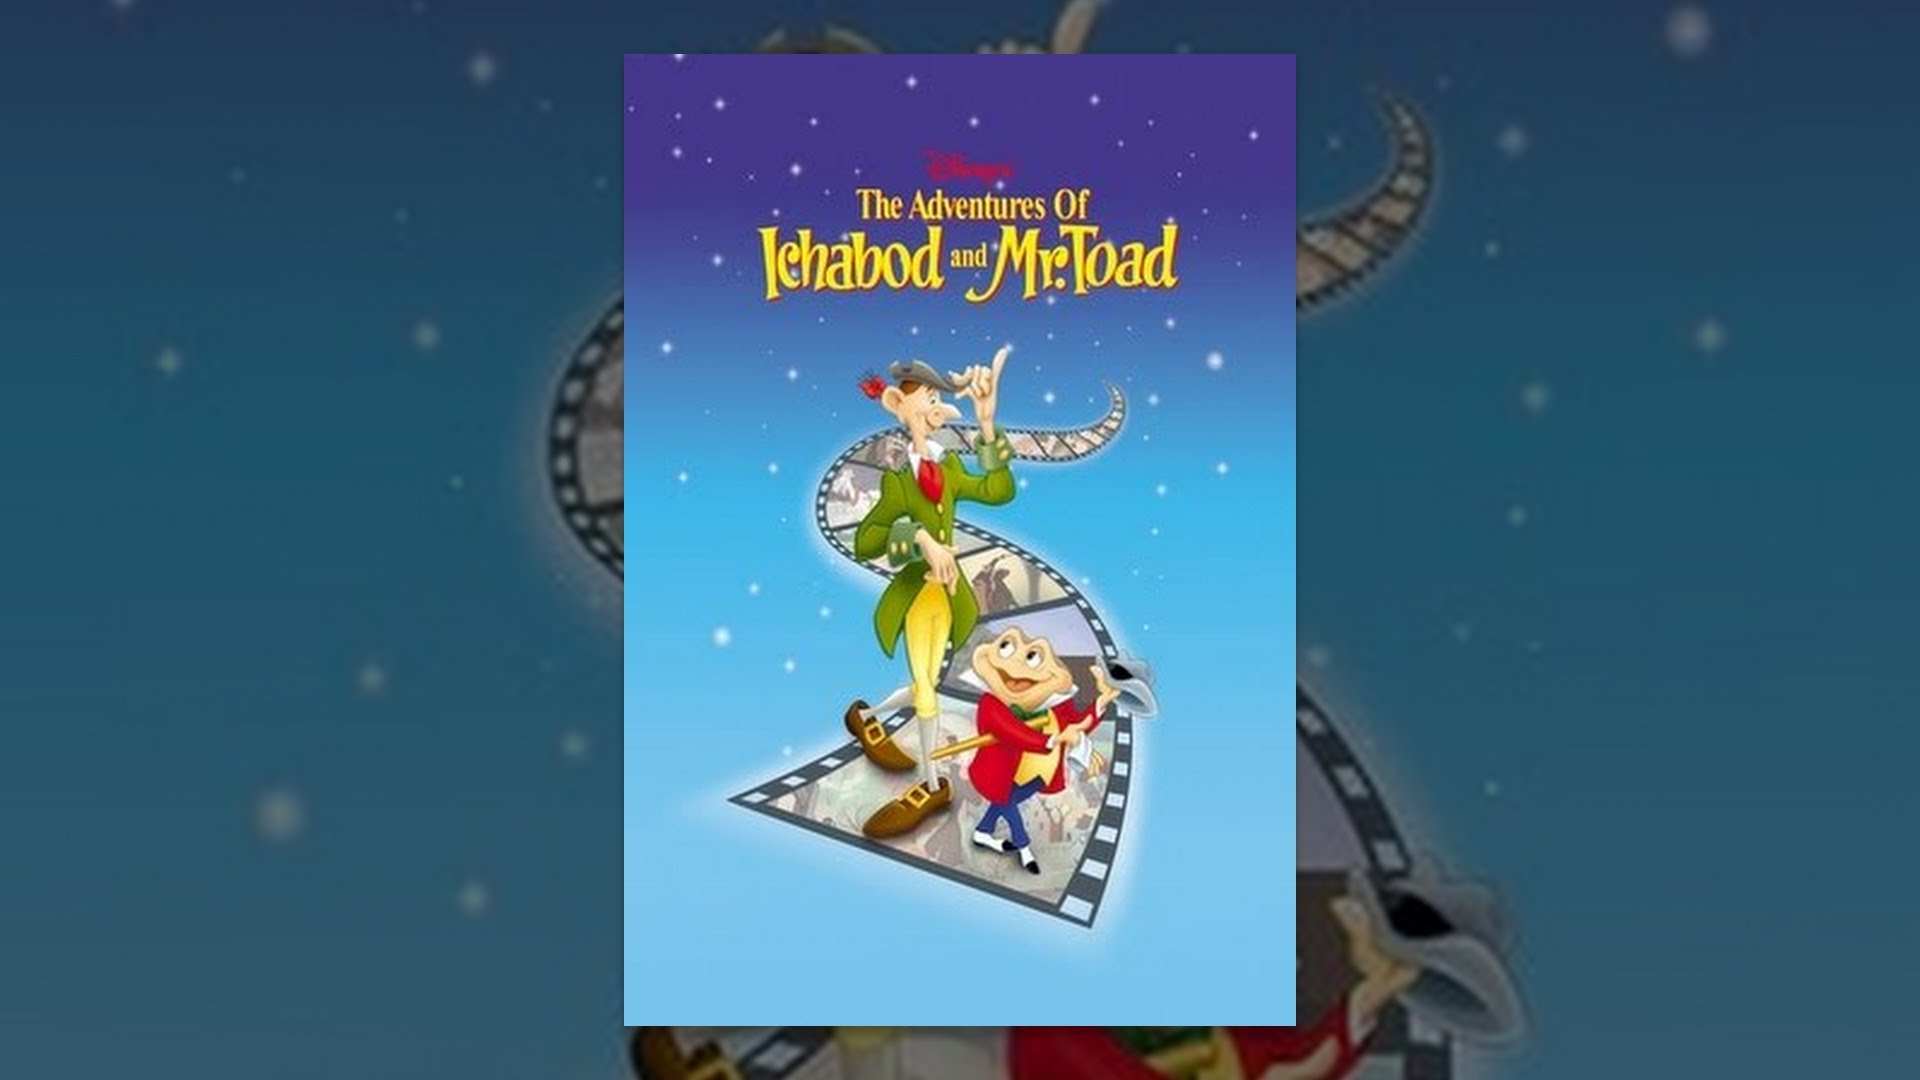 Download The Adventures of Ichabod And Mr. Toad